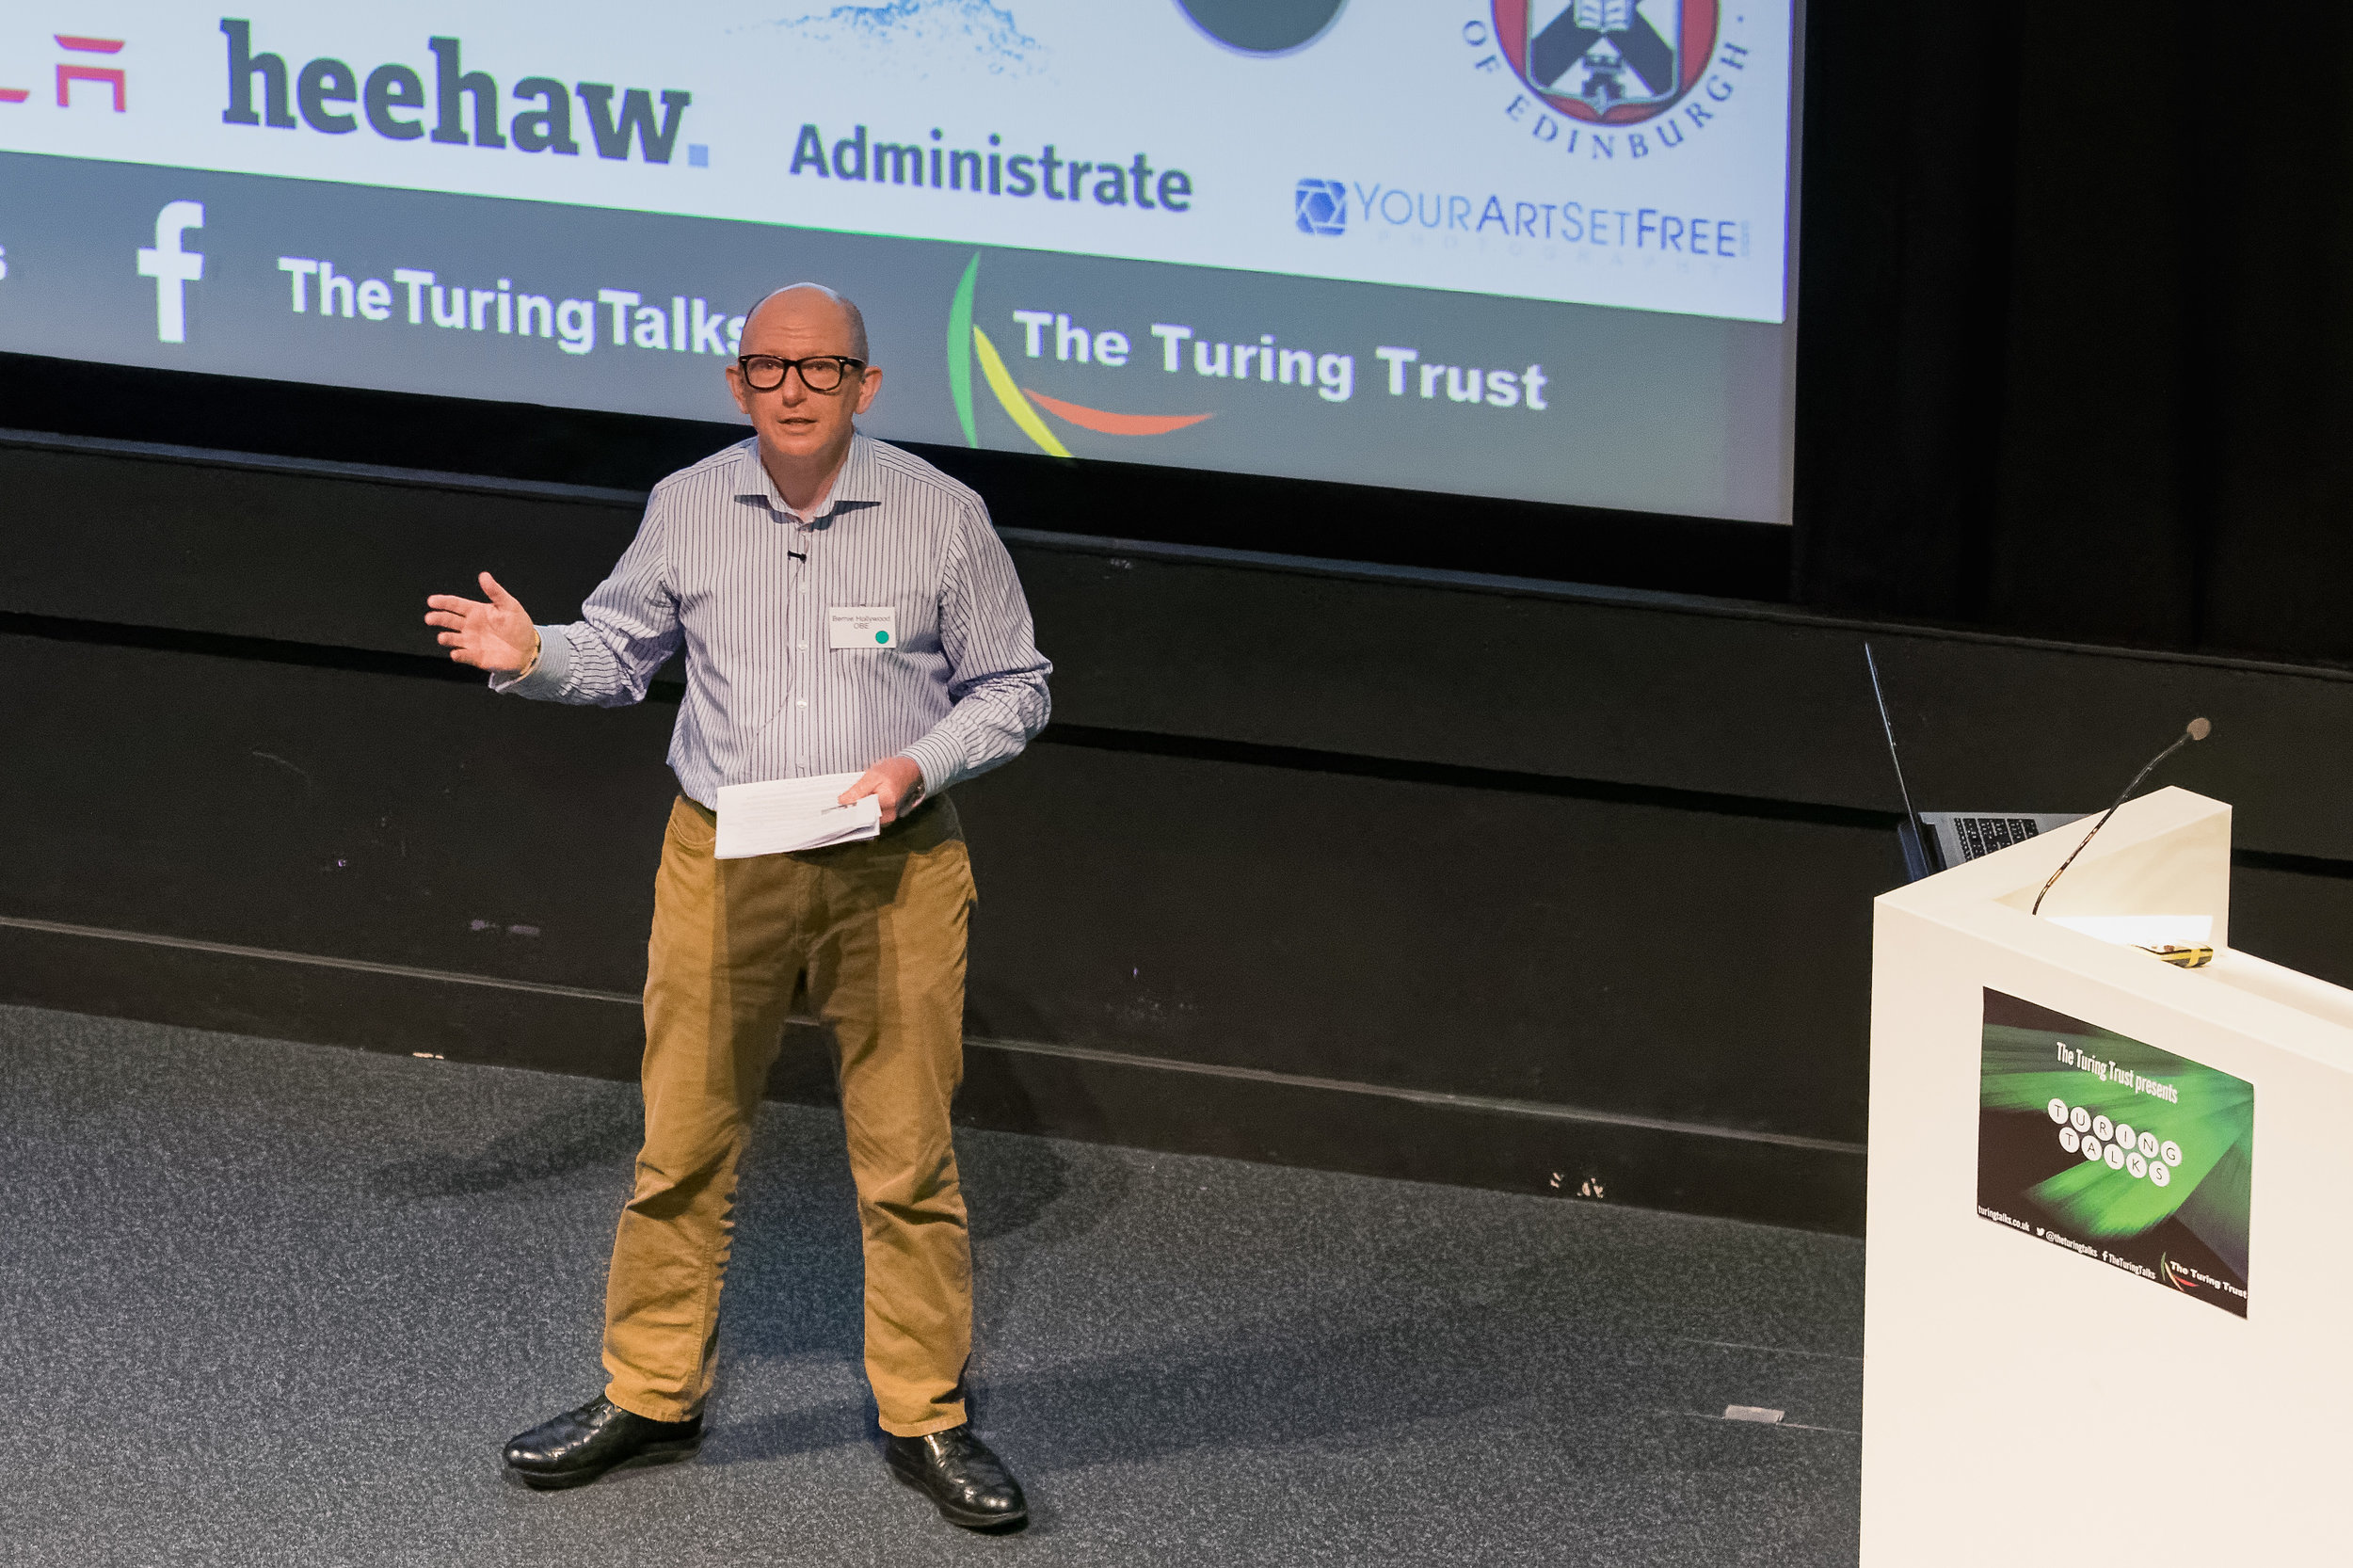 Turing Trust - There are some really great photos here. Thank you so much. You put an amazing amount of energy into getting the photos and to great effect. I am going to have great difficulty in picking the best for a highlights of the day on the website - you also managed to get a great mix and the ones of the networking and audience really help convey the buzz we had on the day. The use of What's App on the day certainly helped with getting it to trend on twitter which was fantastic.Once again, many thanks for all your time and expertise that went into getting us such a great record of the day - we really appreciate it and will ensure it is fully acknowledged on our website.Nicola Turing